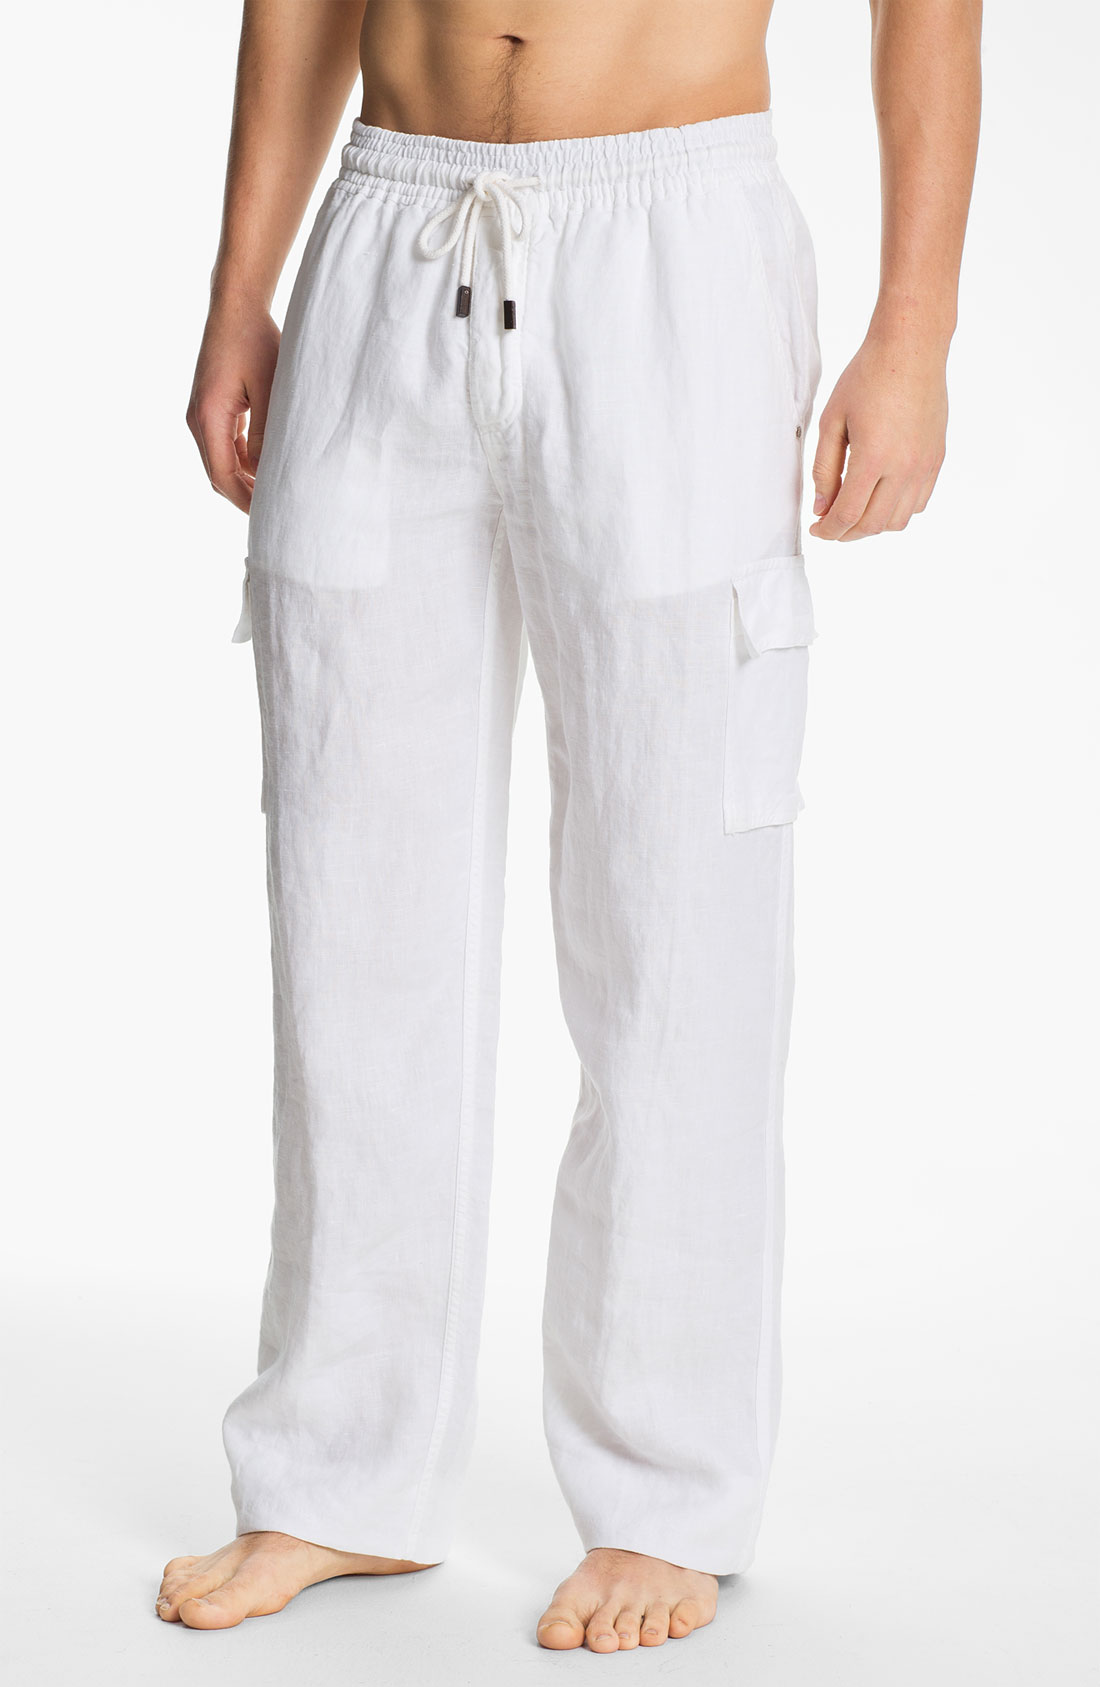 mens white linen pants drawstring - Pi Pants